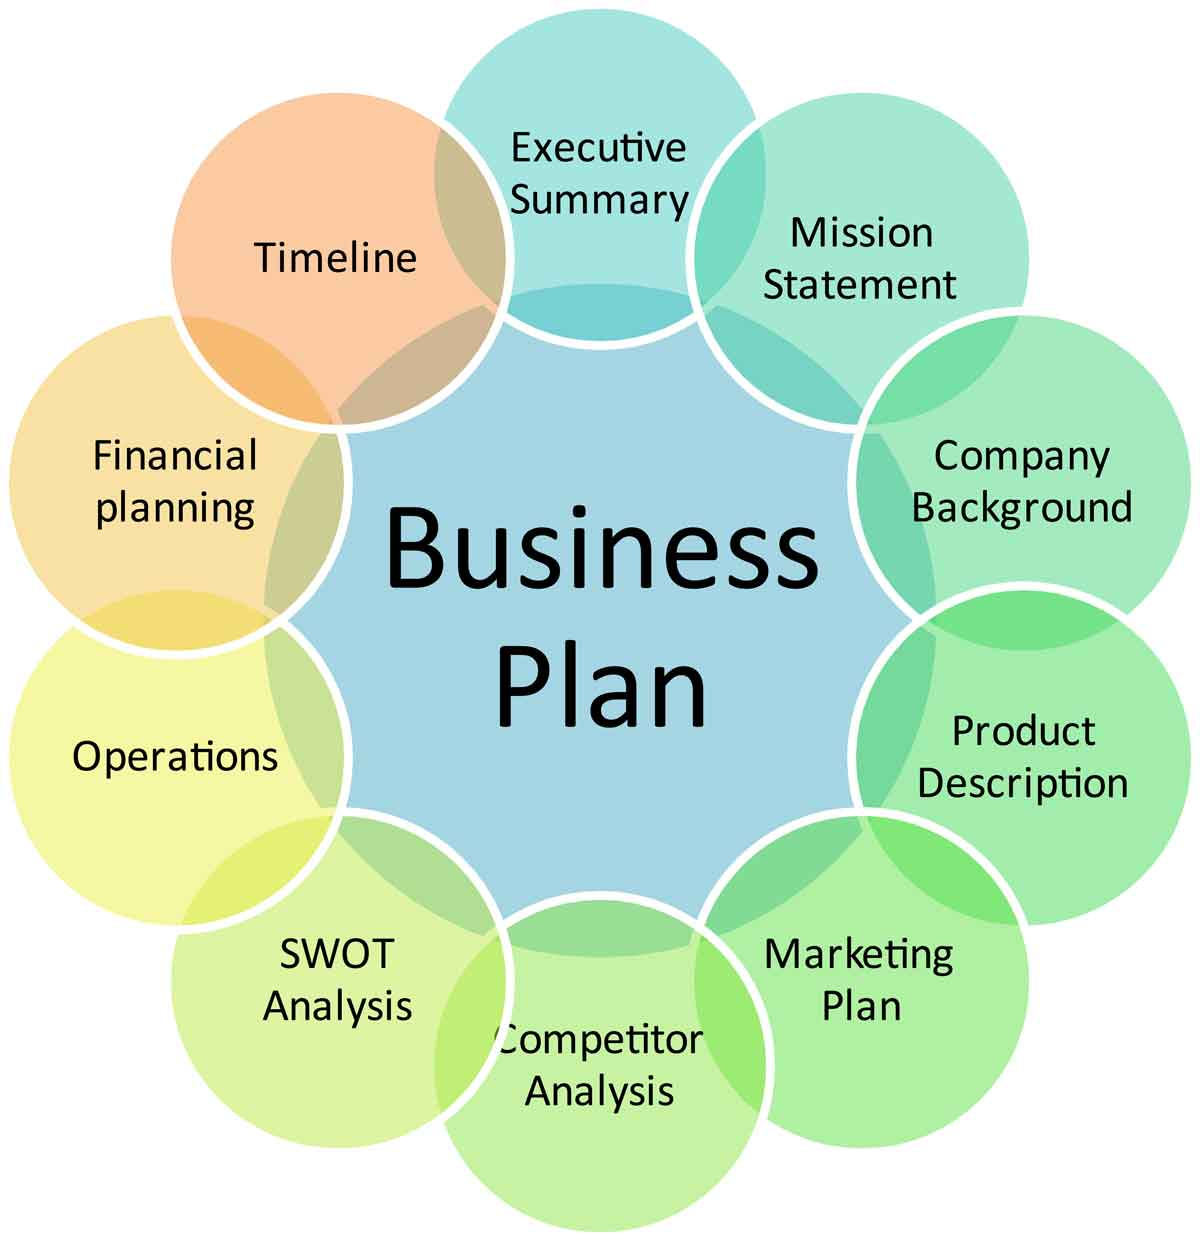 Details of a business plan